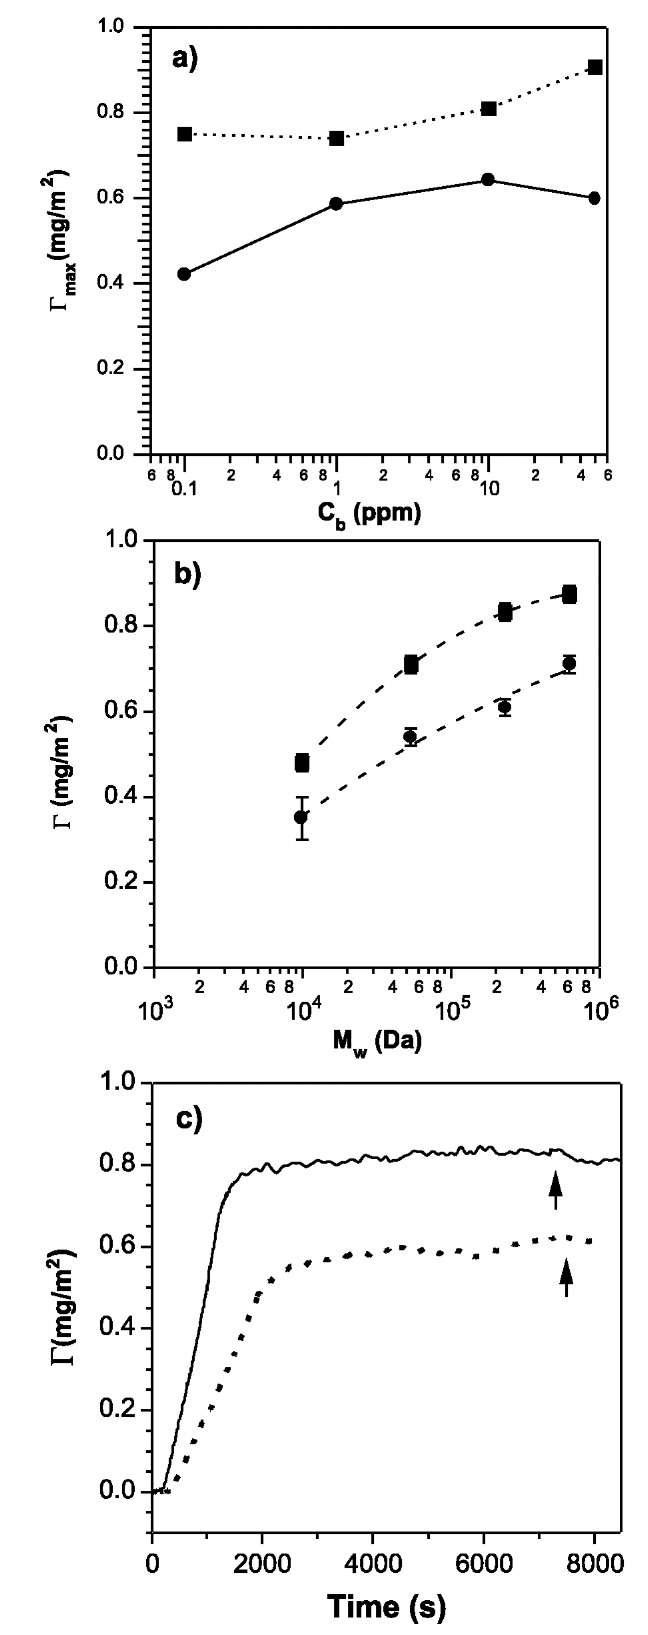 Adsorbed amount of PEO as a function of bulk concentration in solution (a) and molecular weight (b) on rough surfaces (squares) and ultra-flat surface (circles). (c) An illustration of G(t) for PEO adsorption on rough (solid line) and ultra-flat (dashed line) surfaces.